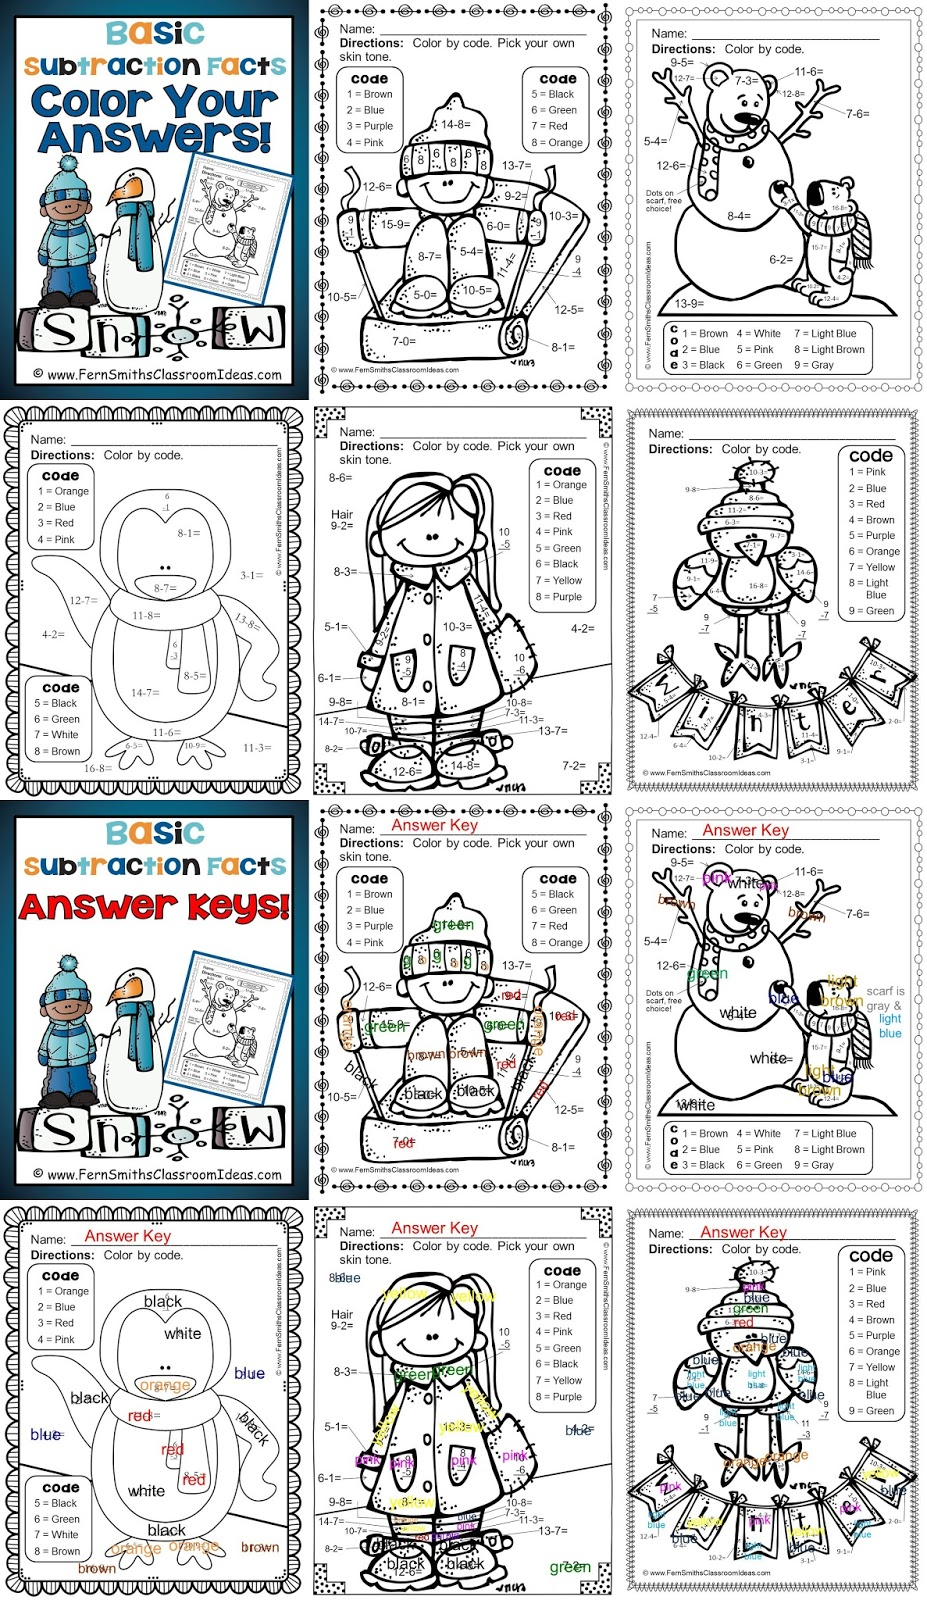 Fern Smith's Classroom Ideas Winter Fun! Basic Subtraction Facts - Color Your Answers Printables at TPT.